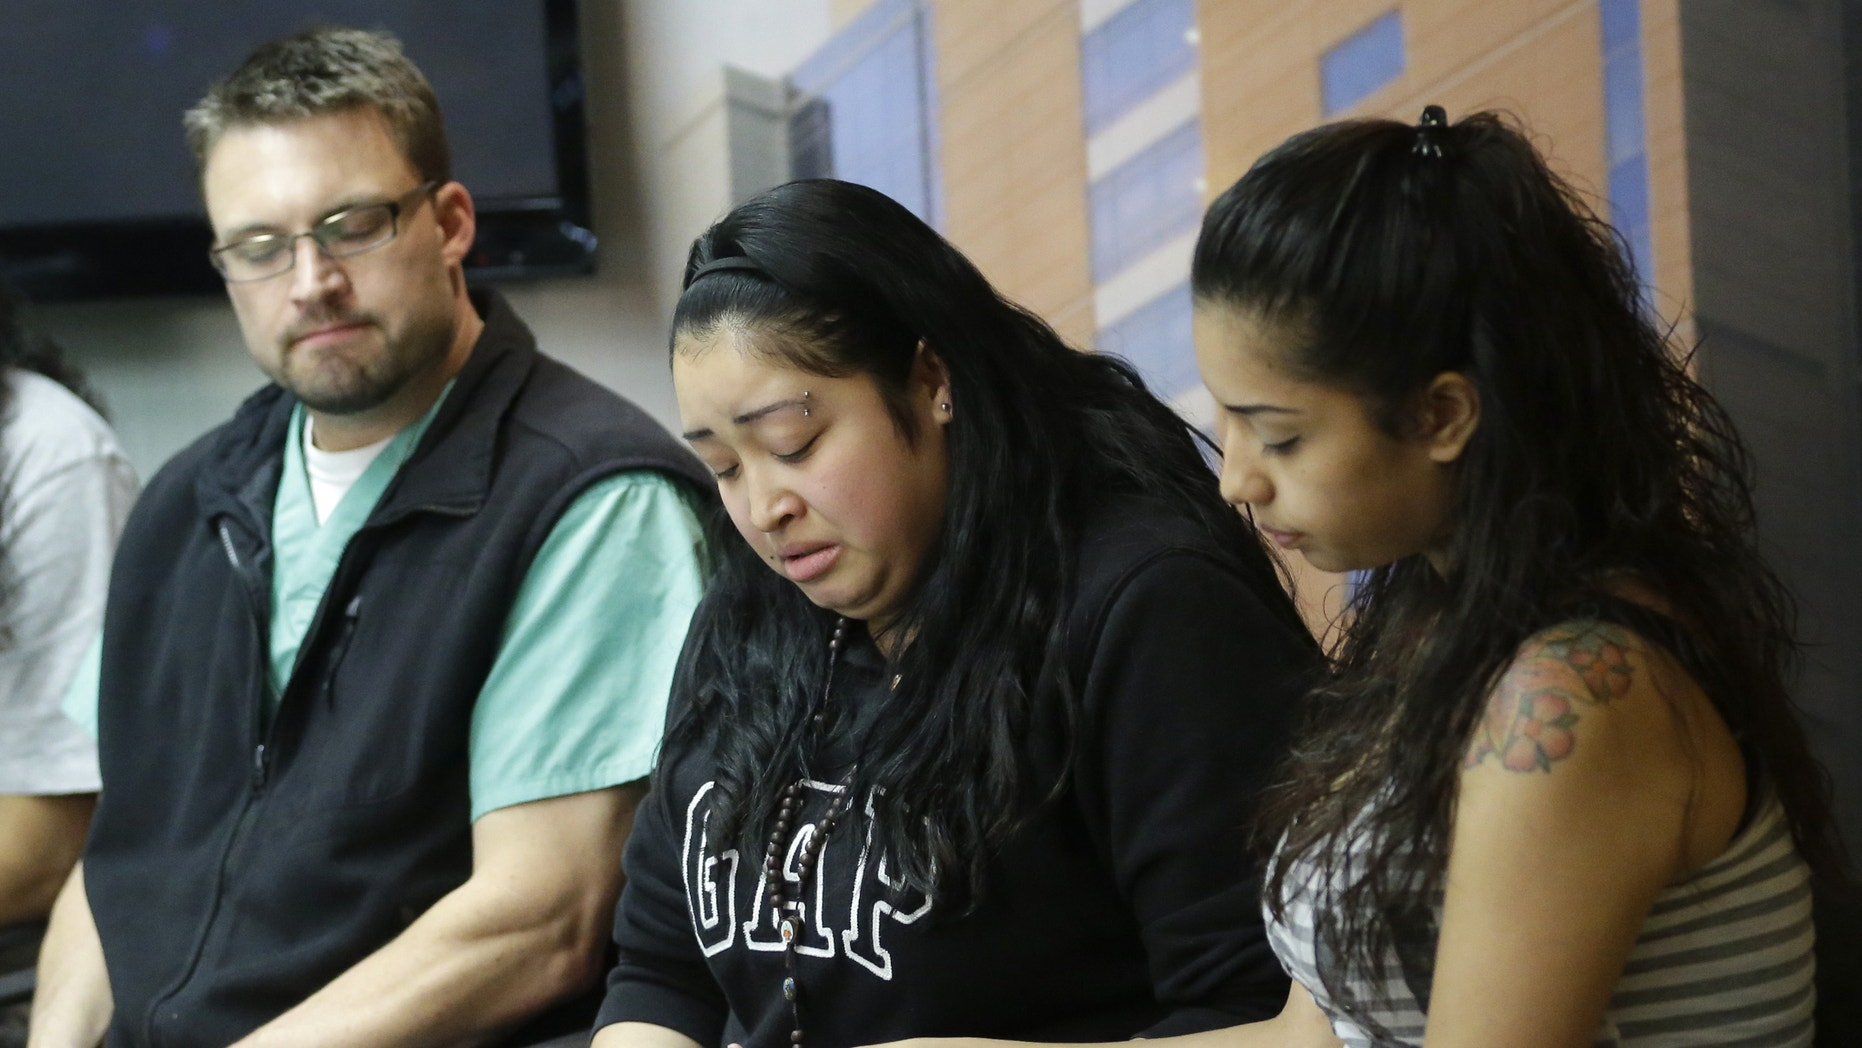 May 2, 2013: Johana Portillo, center, and her sister Ana Portillo hold hands while Dr. Shawn Smith looks on during a news conference at Intermountain Medical Center, in Murray, Utah. Ricardo Portillo, a Utah soccer referee, is in a coma after being punched by a teenage player unhappy with one of his calls, and his family says their only hope is for a miracle.